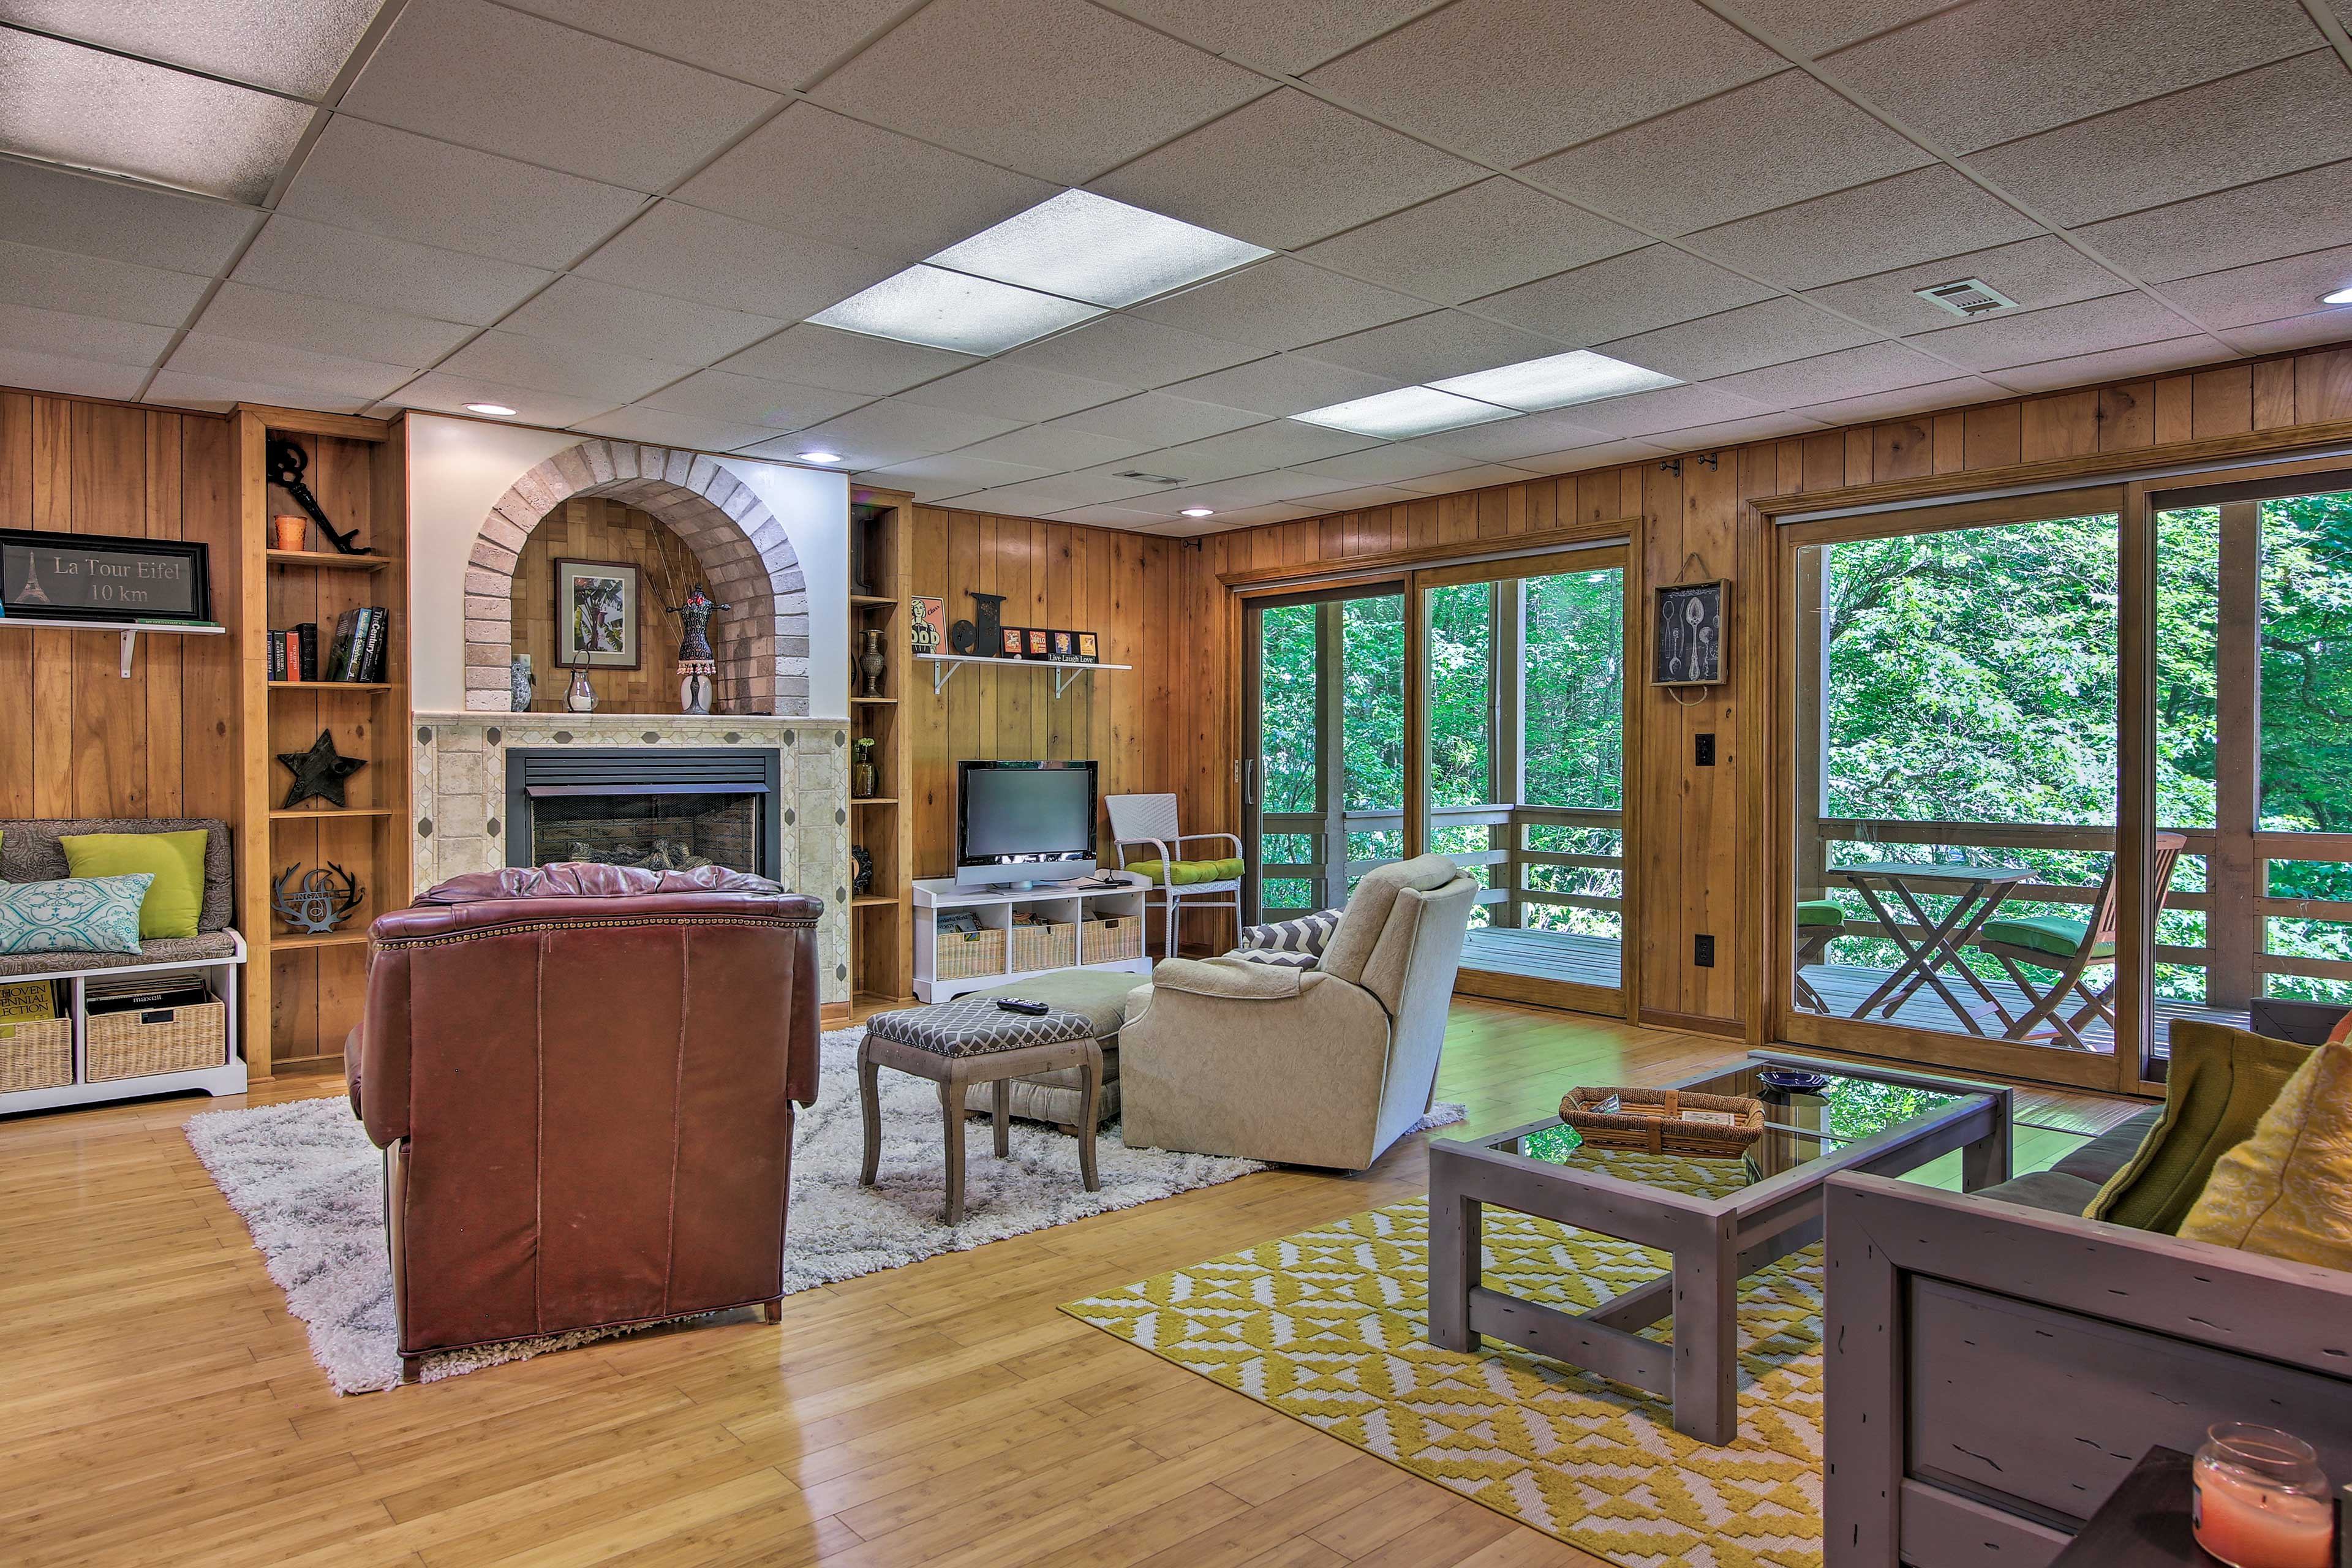 This bonus room features another fireplace, TV, and deck access.